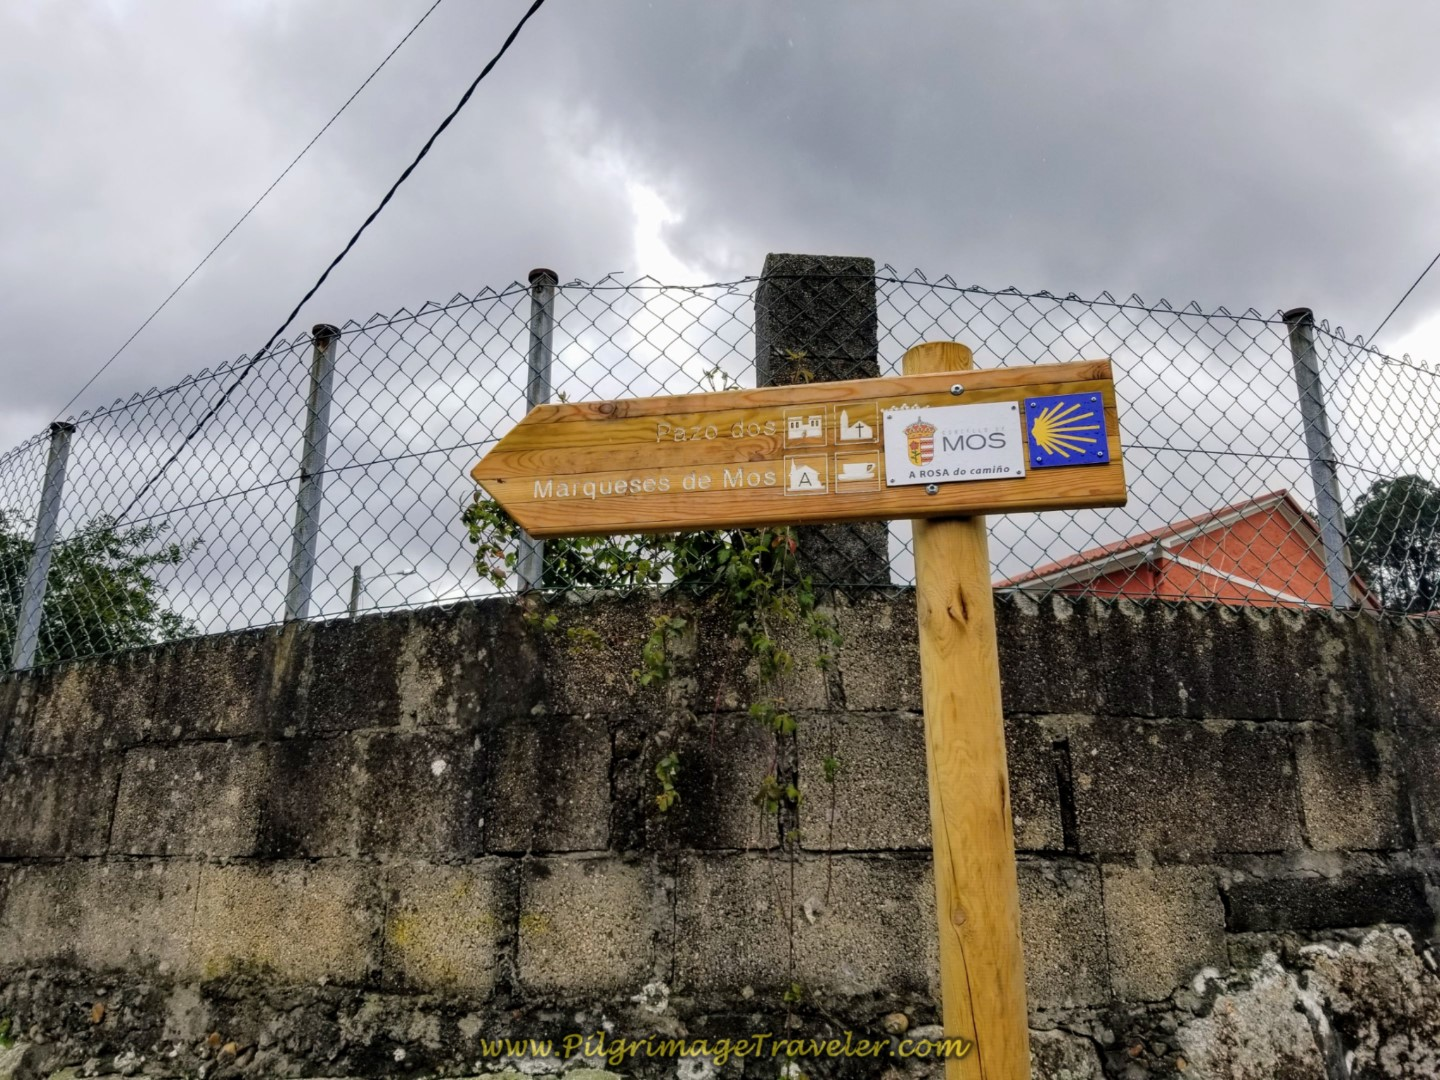 Municipality of Mos Information Signposts on day twenty-one of the central route of the Portuguese Camino